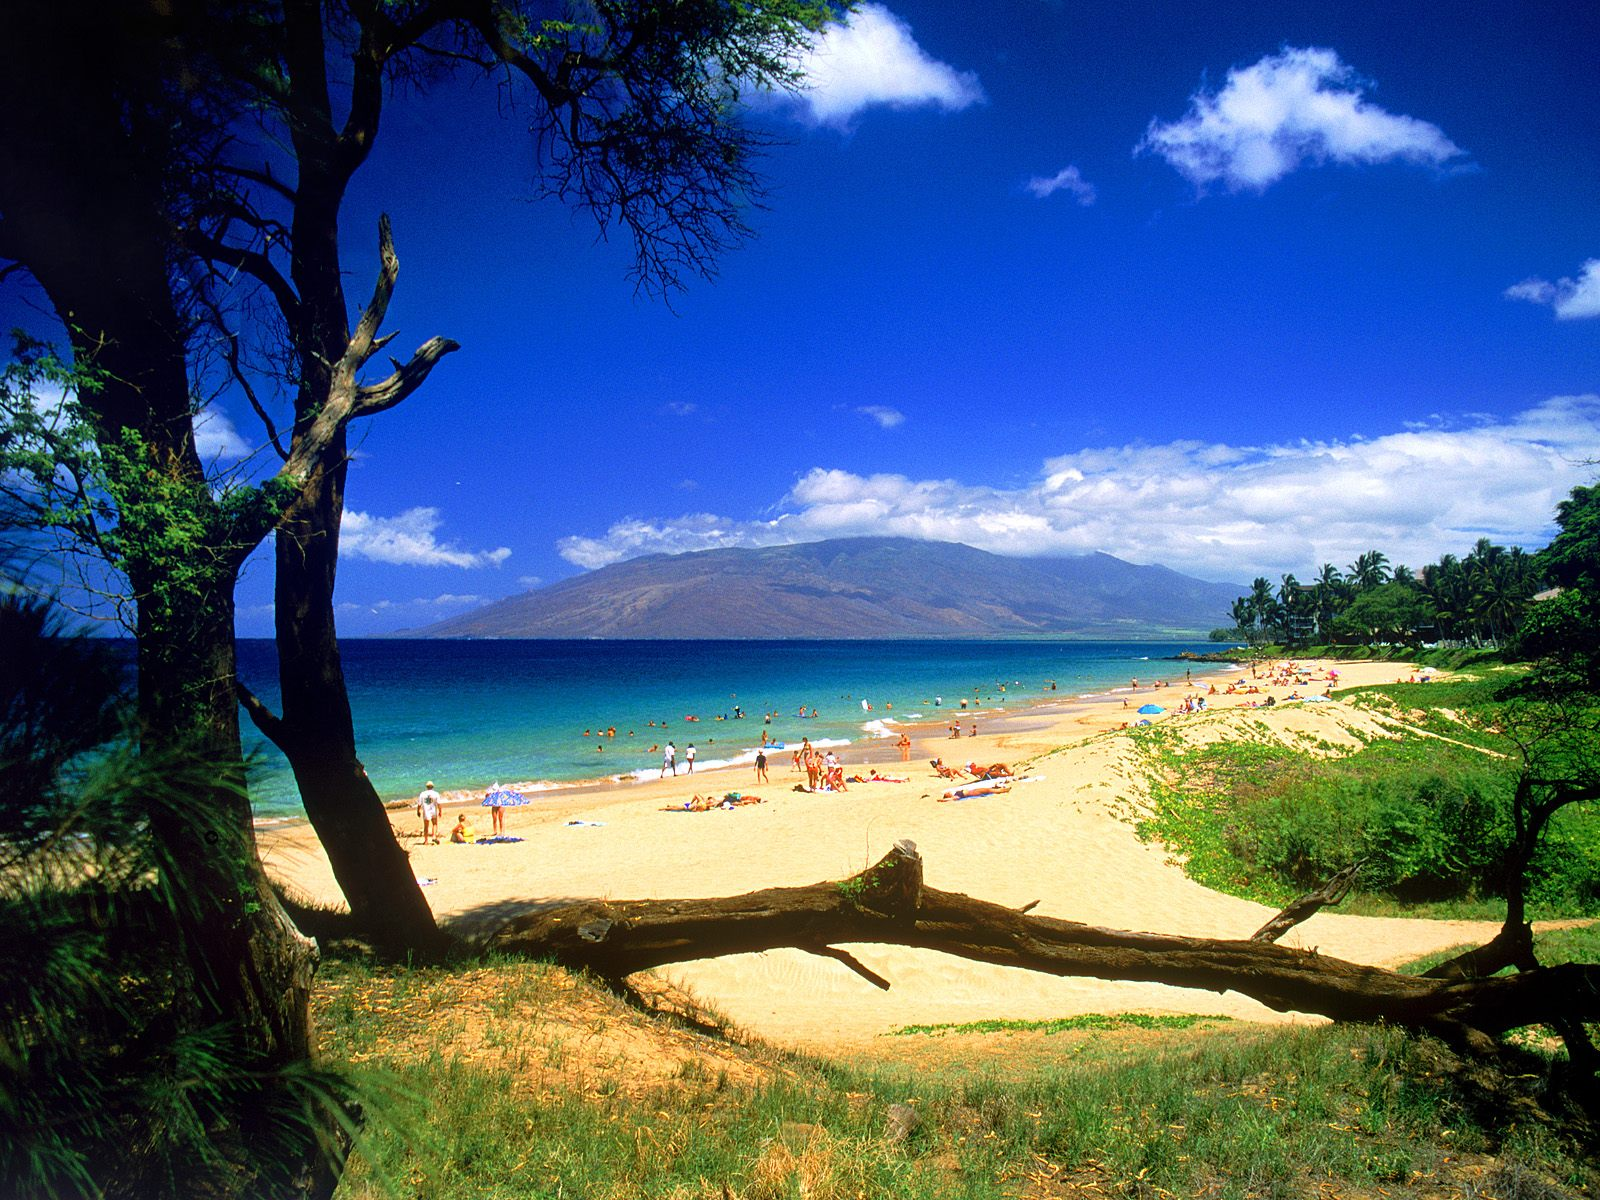 Maui Wallpaper Photography Download HD Wallpapers 1600x1200